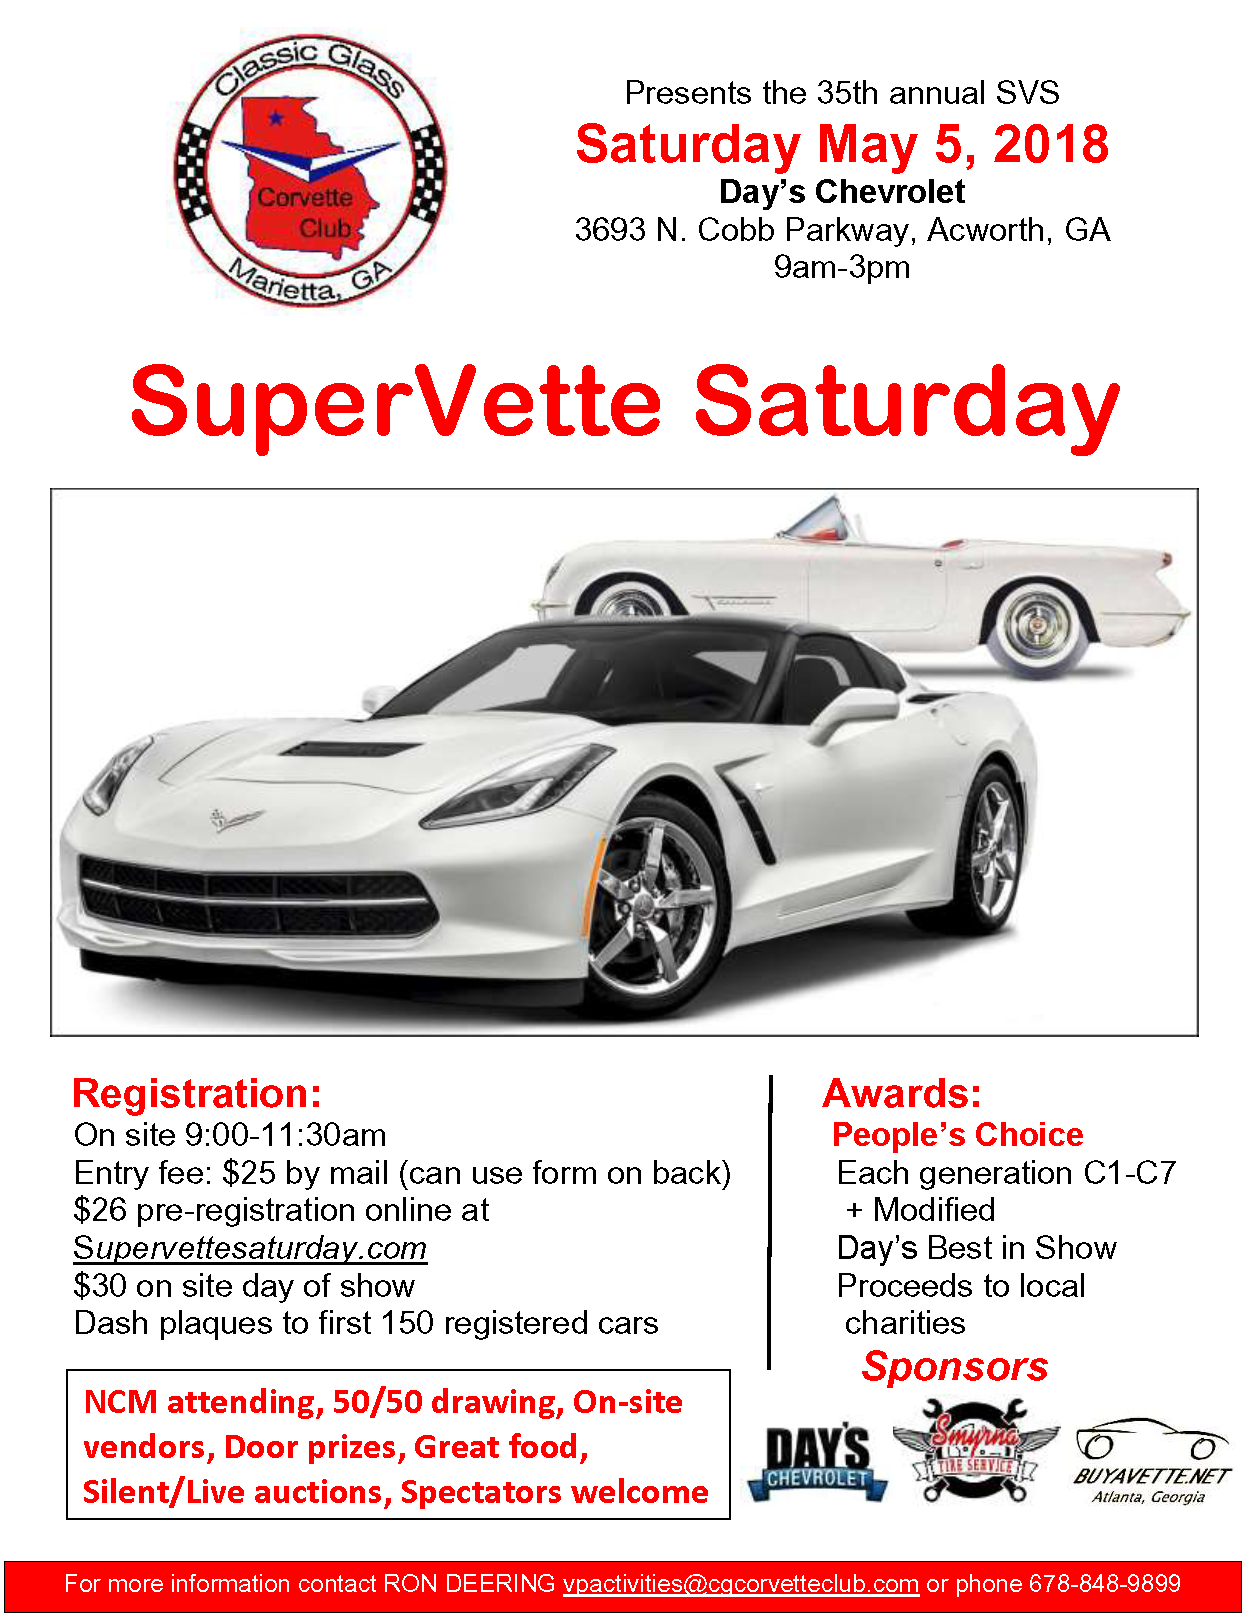 SuperVetteSaturday